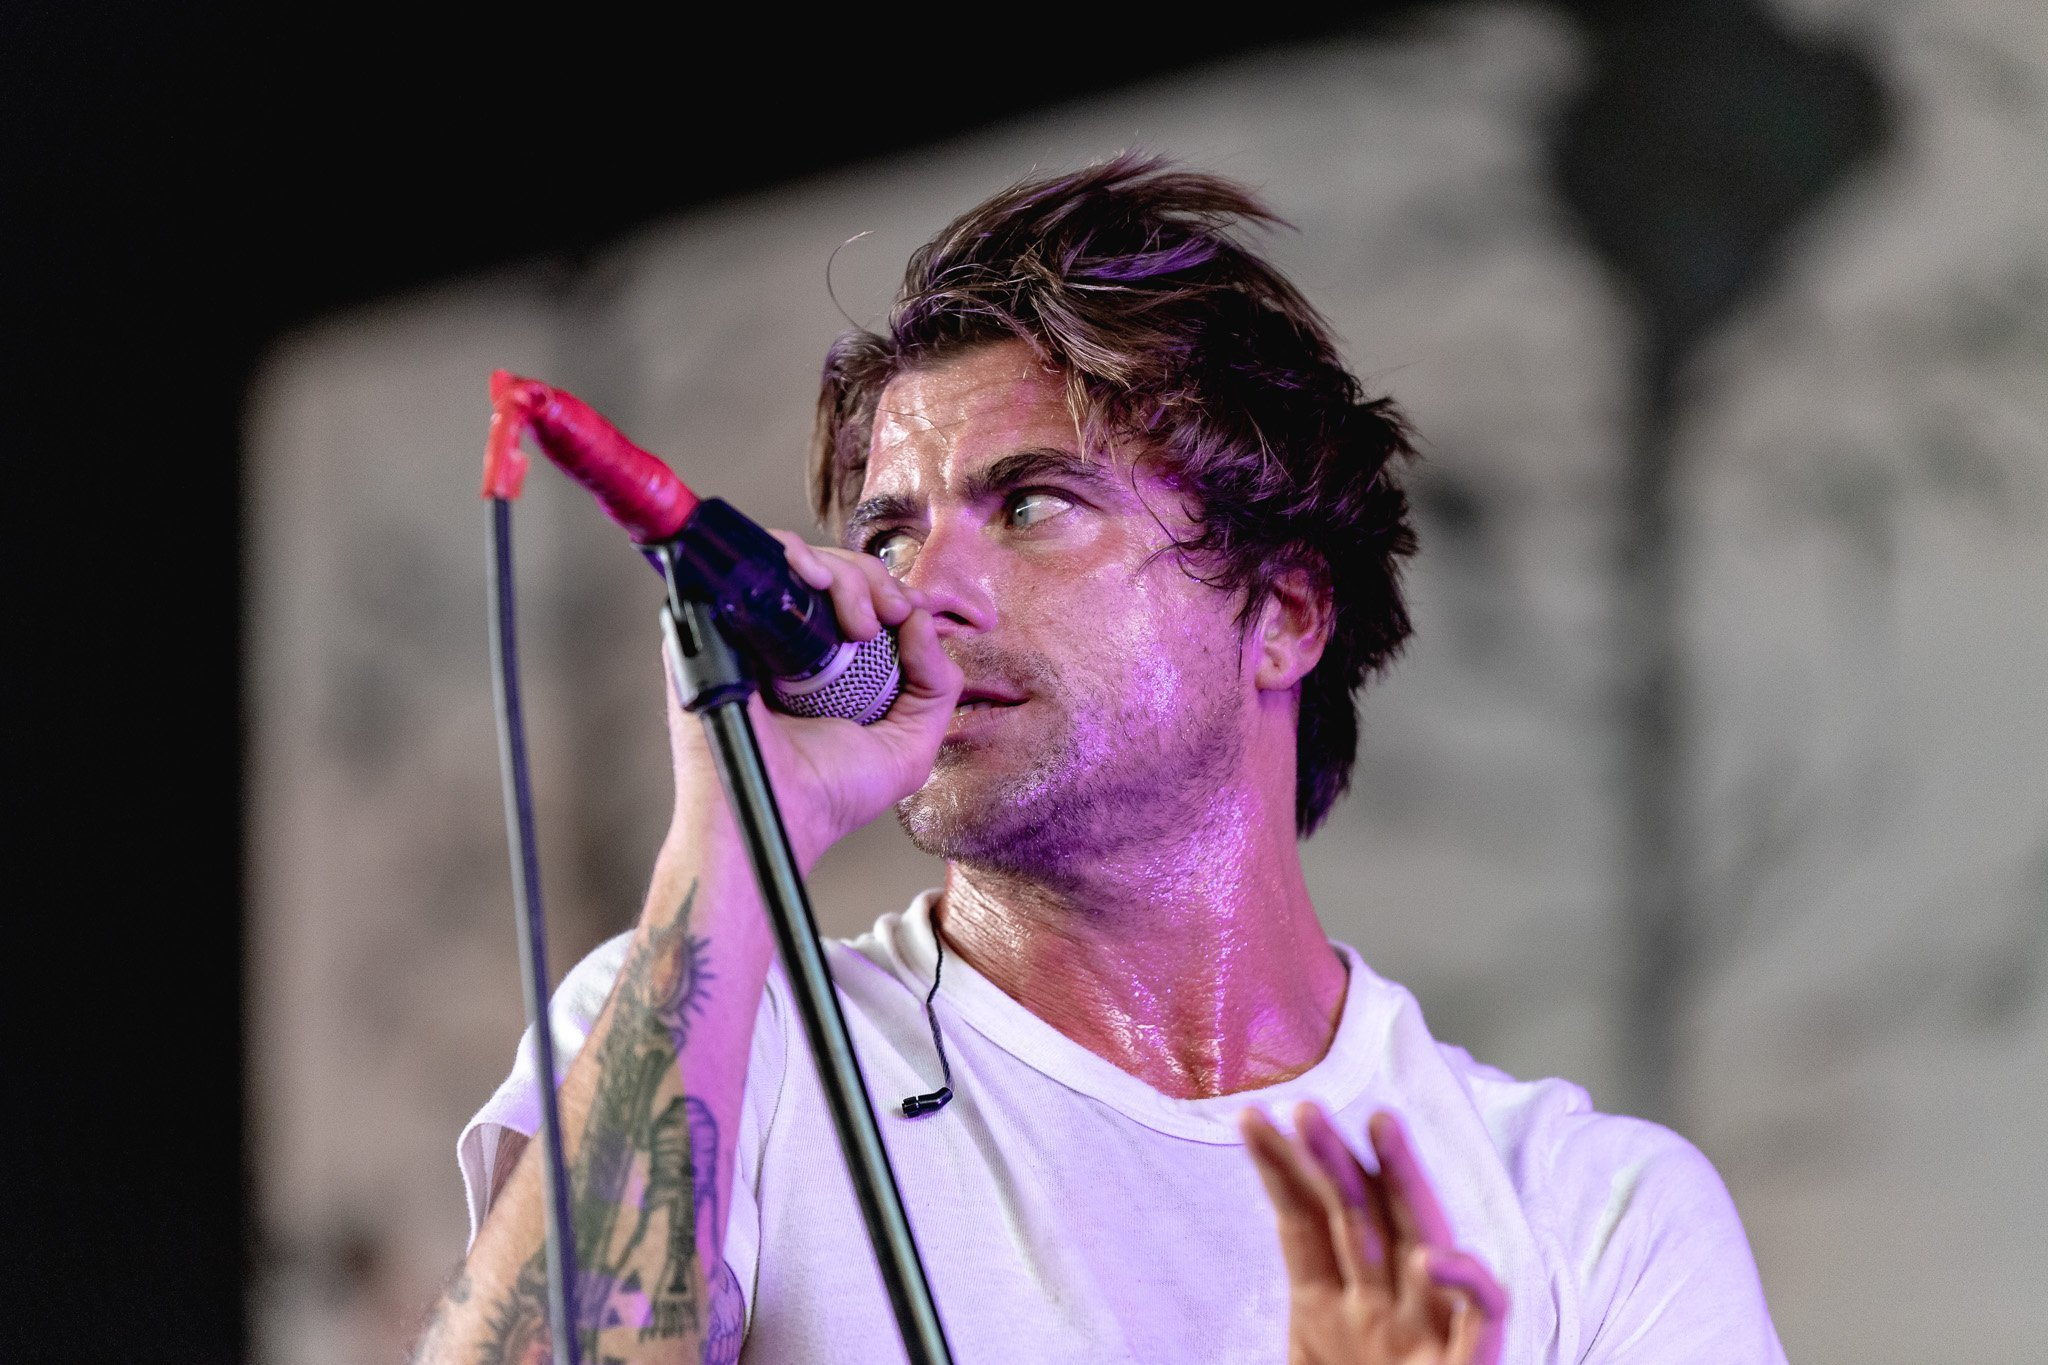 Circa Survive performs at the Rockstar Disrupt Festival in Phoenix, AZ on July 27, 2019.